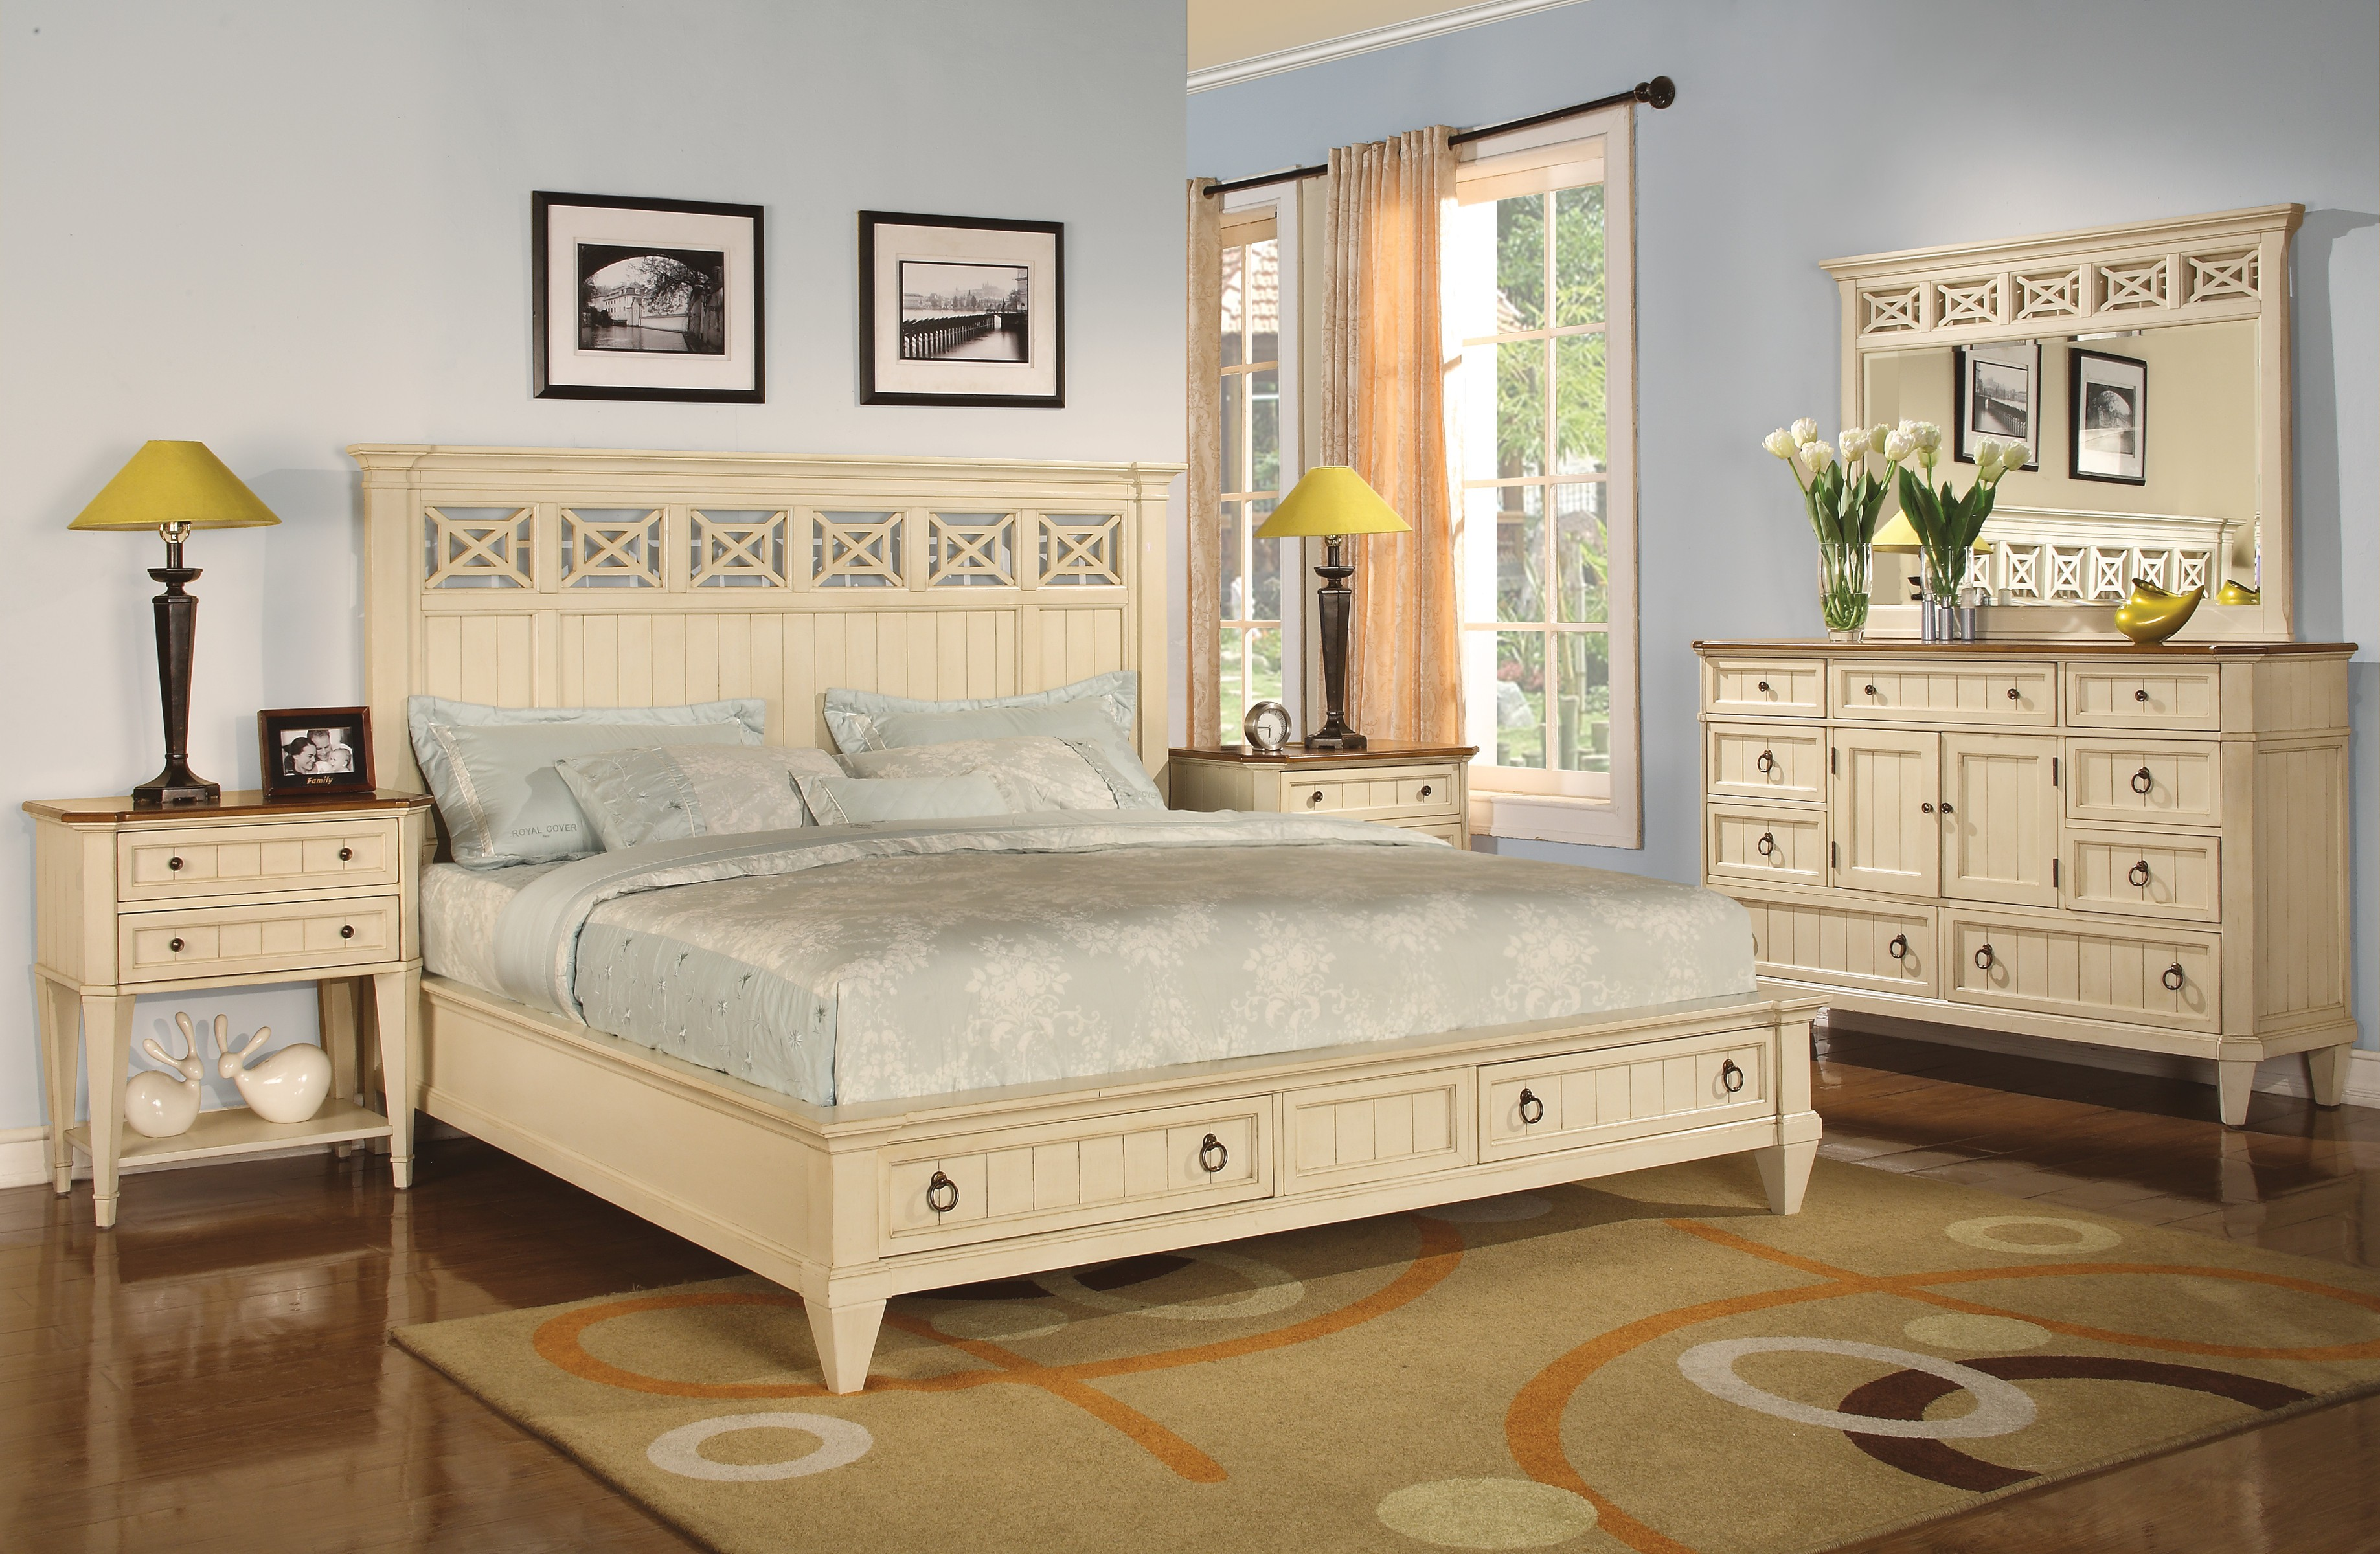 Vintage Look Bedroom Furniture Of Some Tips On Buying Antique Sets Acnn Decor